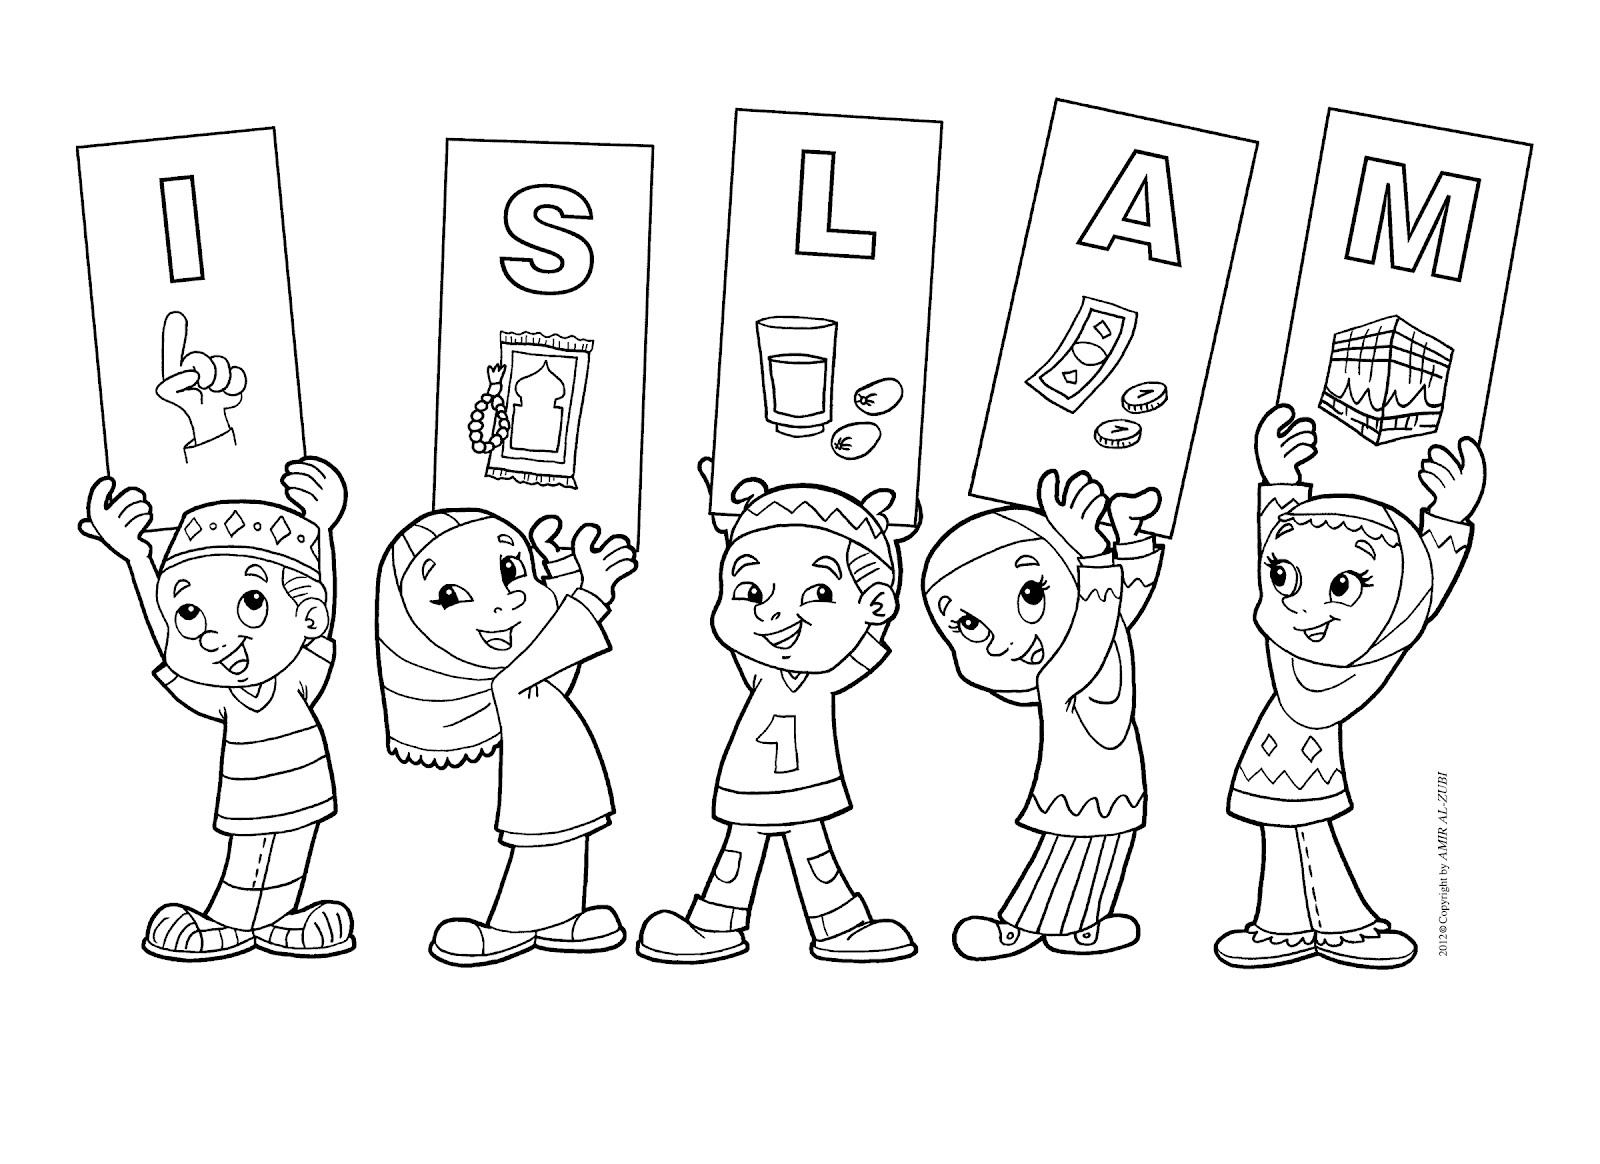 New Muslim Kids: ISLAM - Coloring Pages